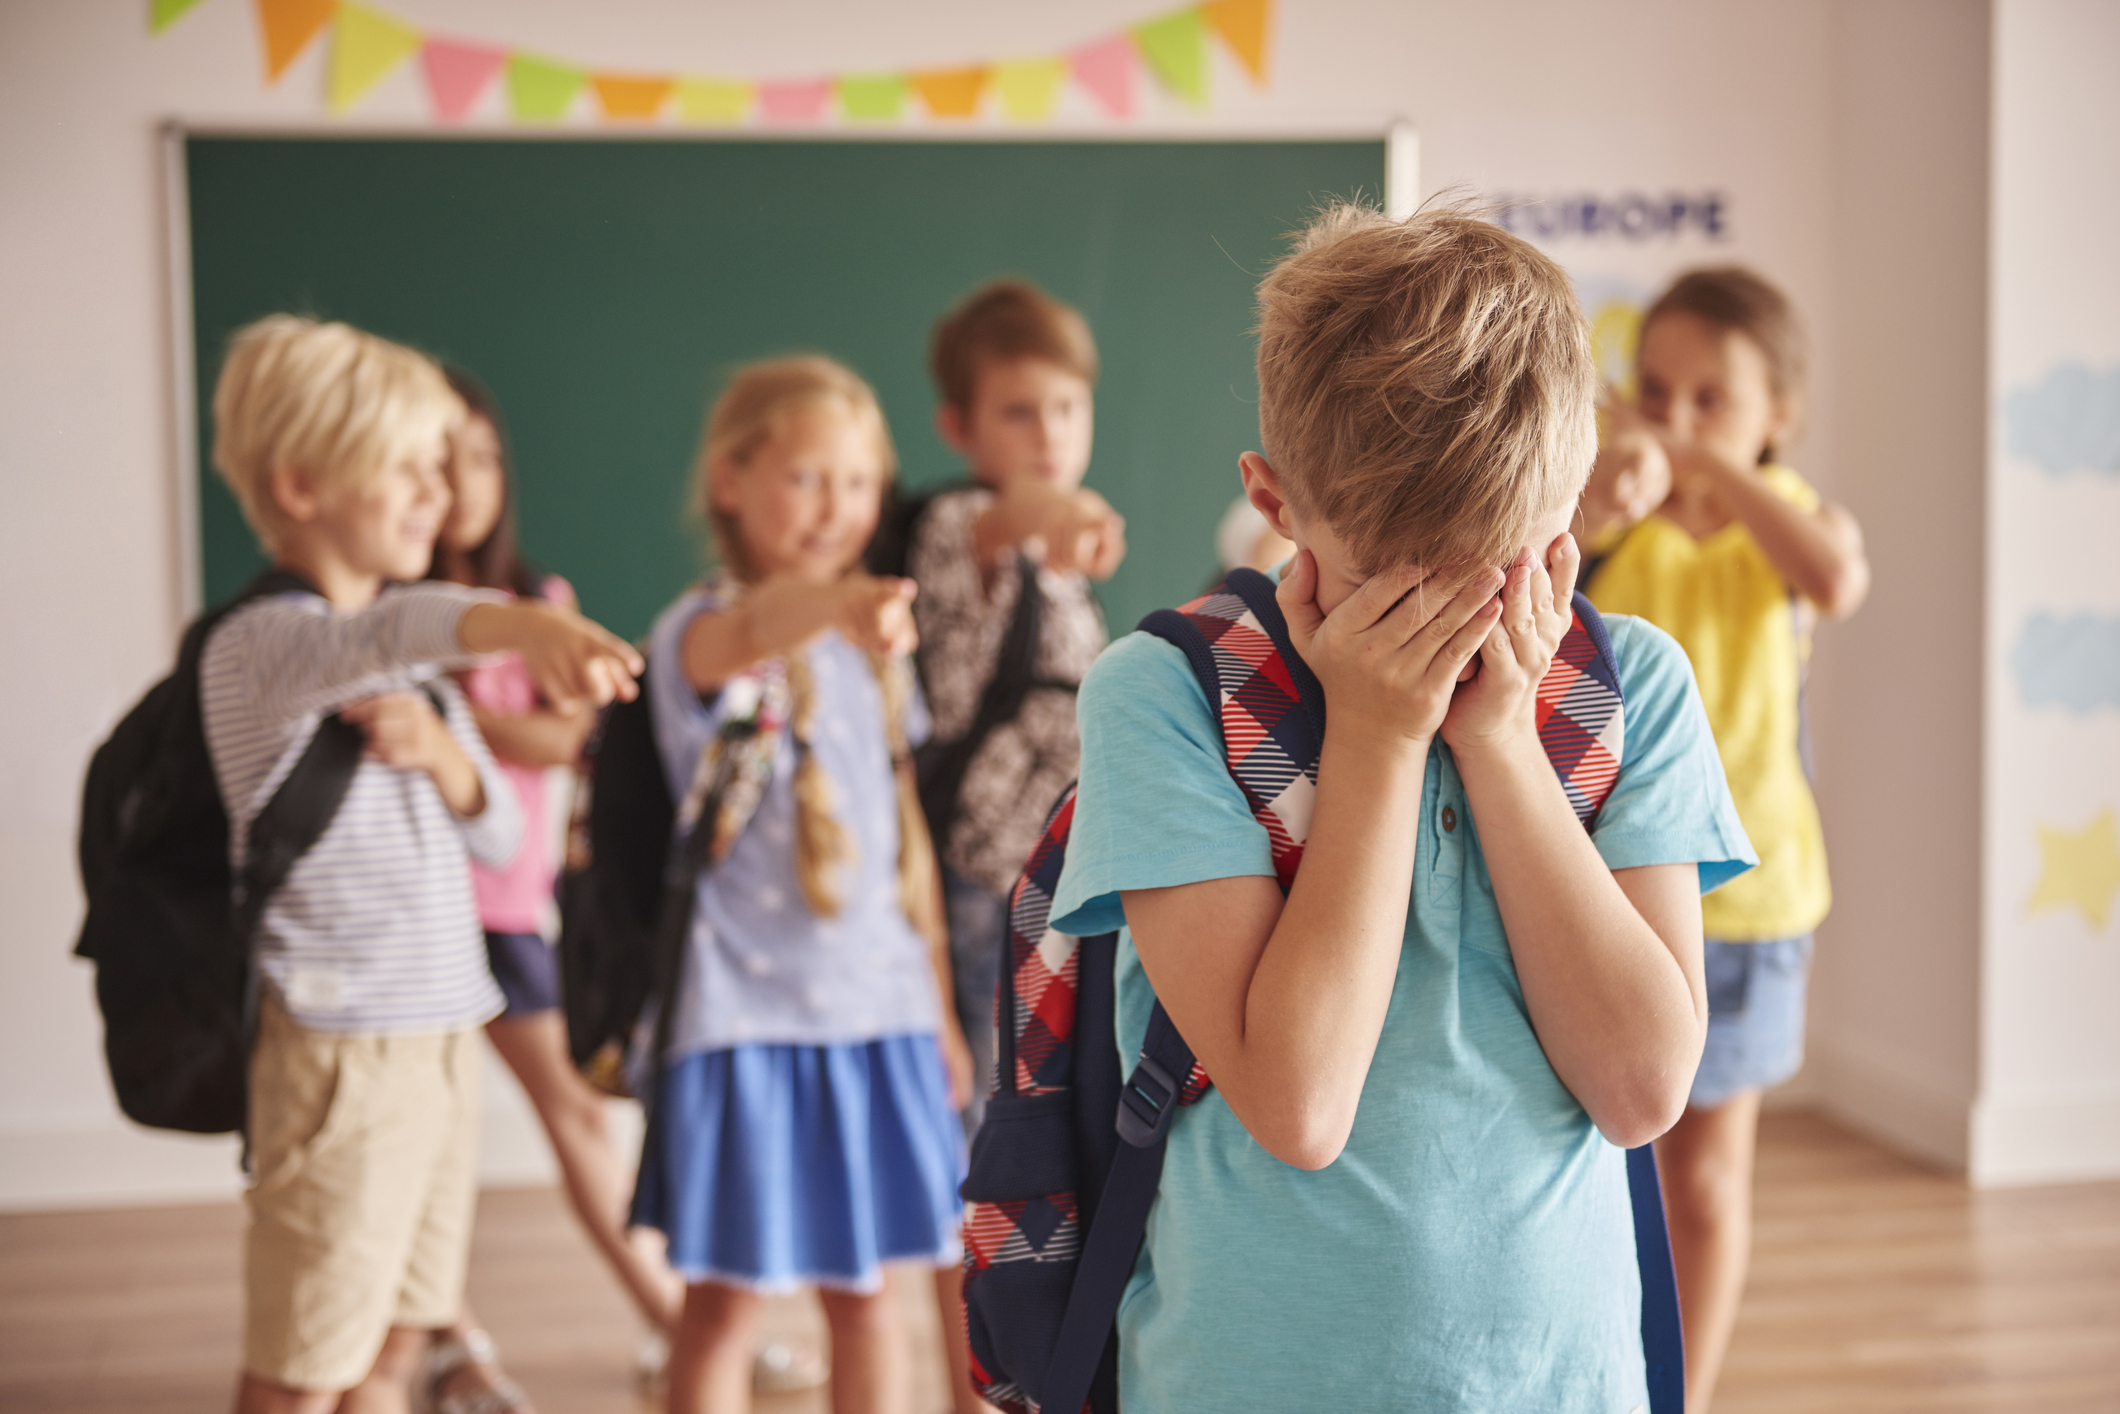 If My Child Were the Bully, I'd Want to Know